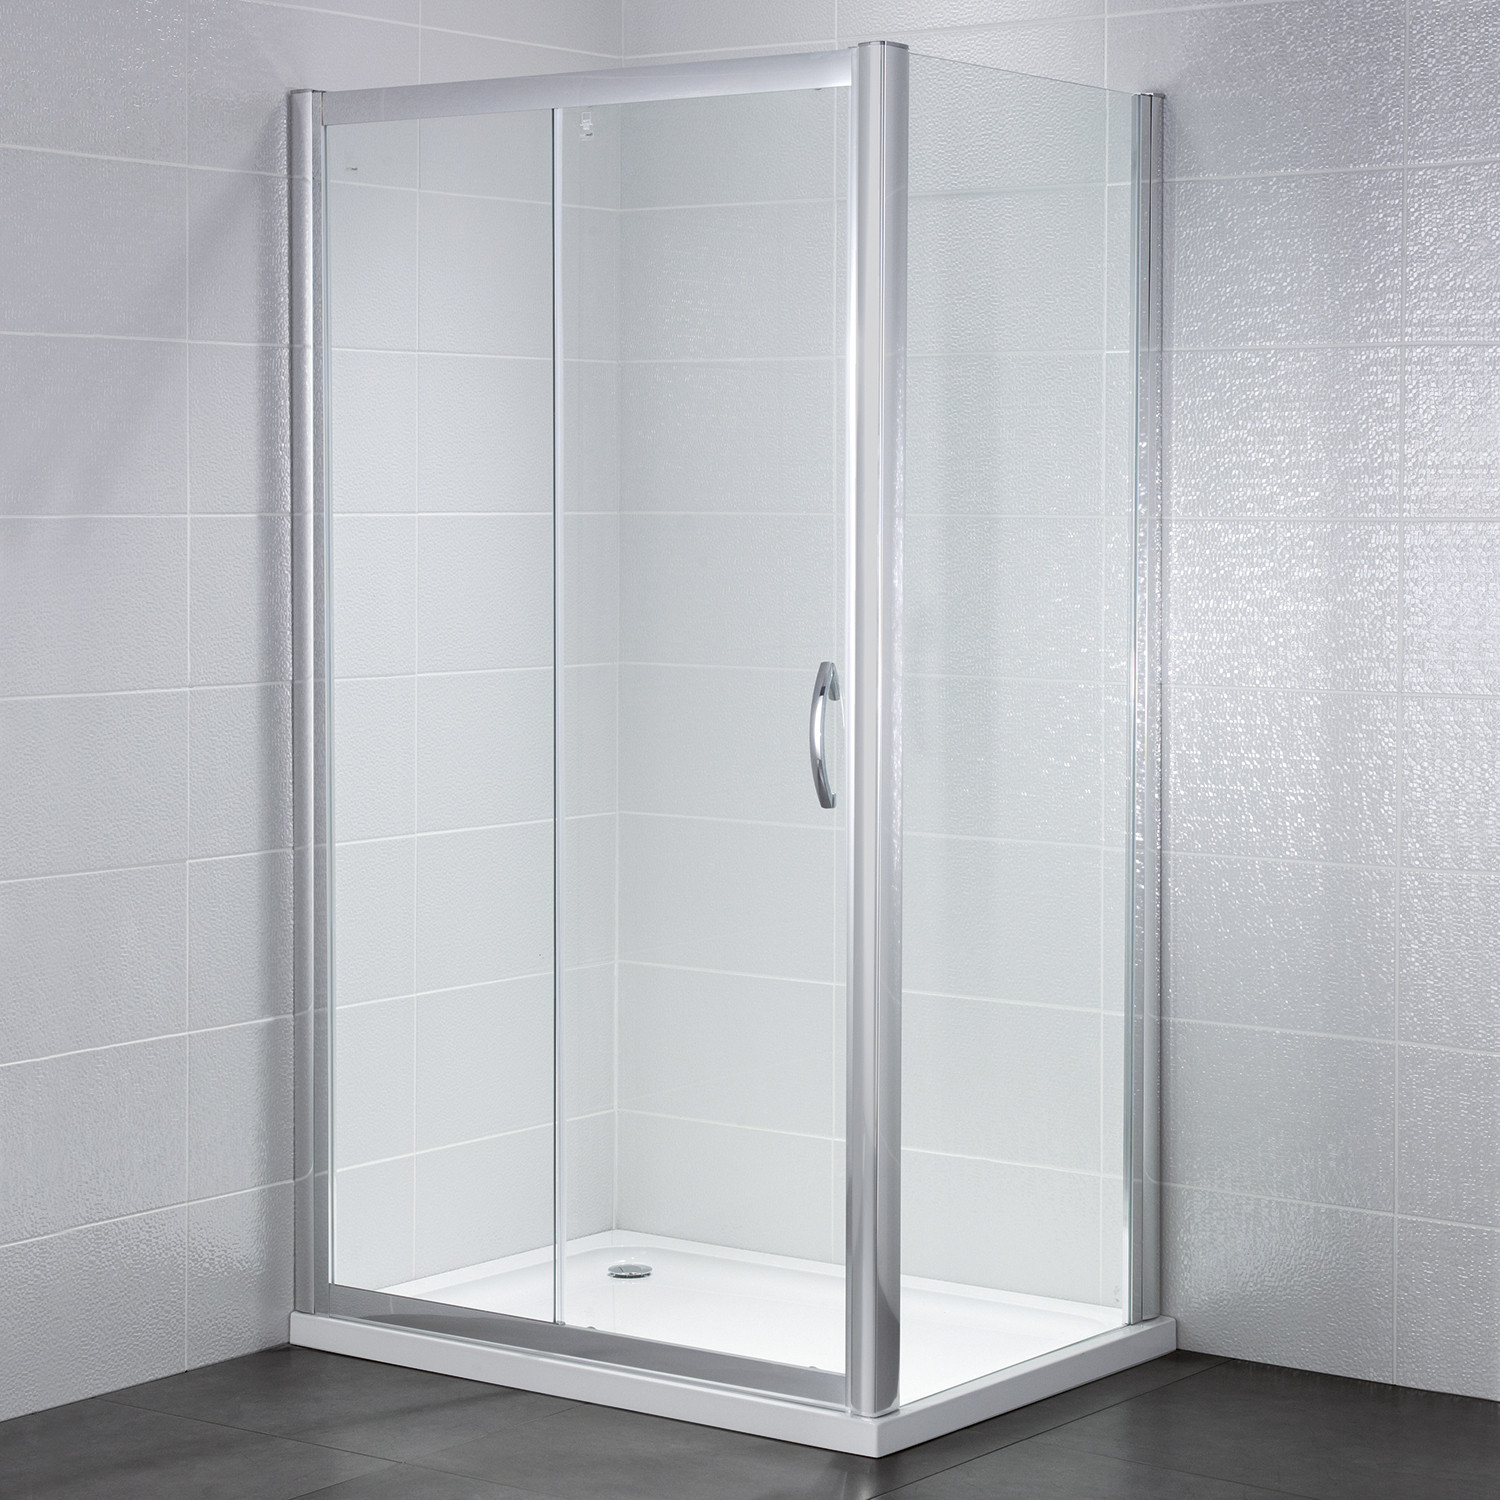 Side Panels - Shower Enclosures - Frontline